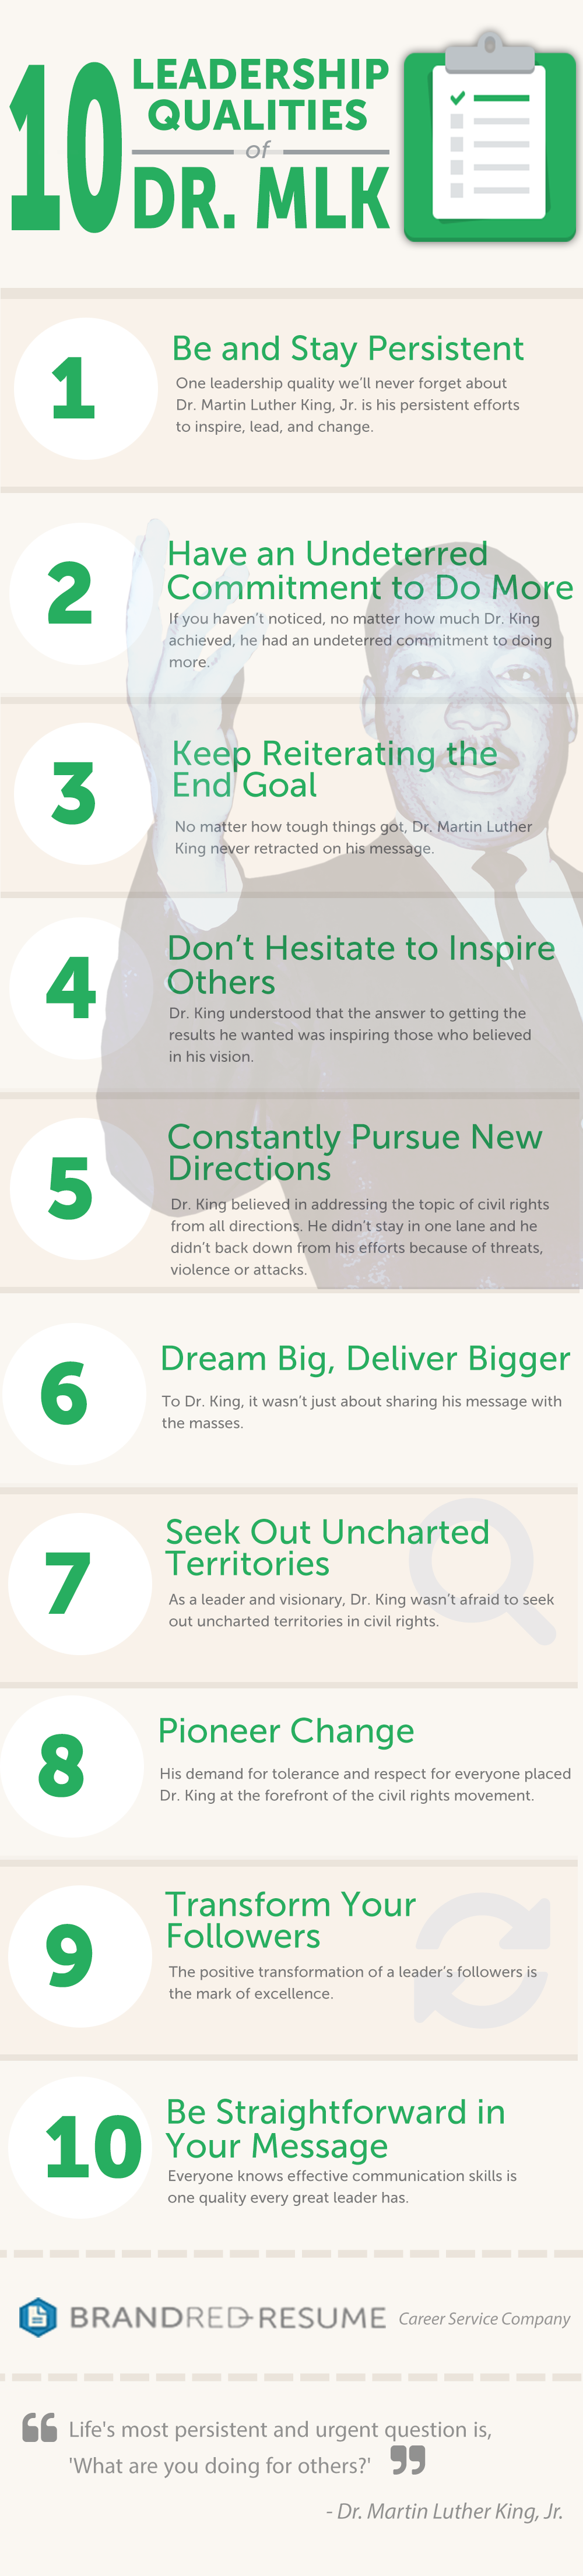 leadership qualities of dr martin luther king jr ly